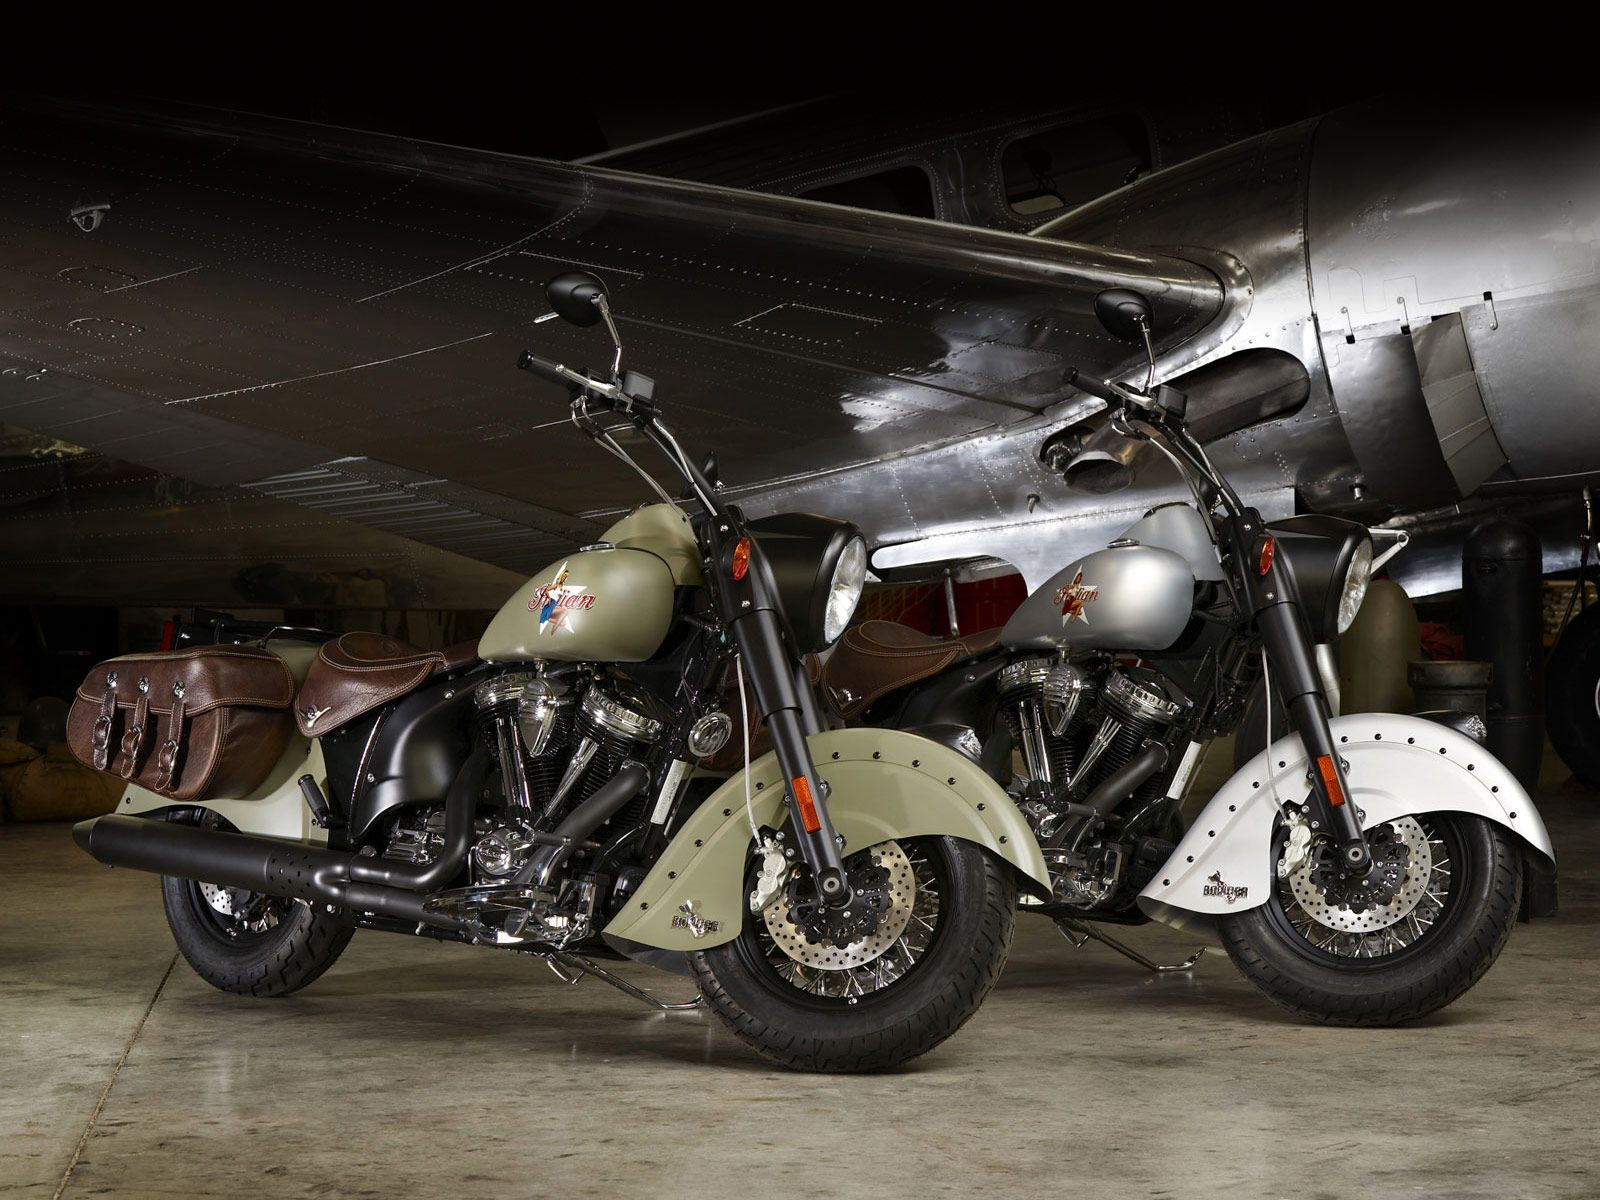 Indian motorcycle 2010 chief bomber le desktop wallpapers